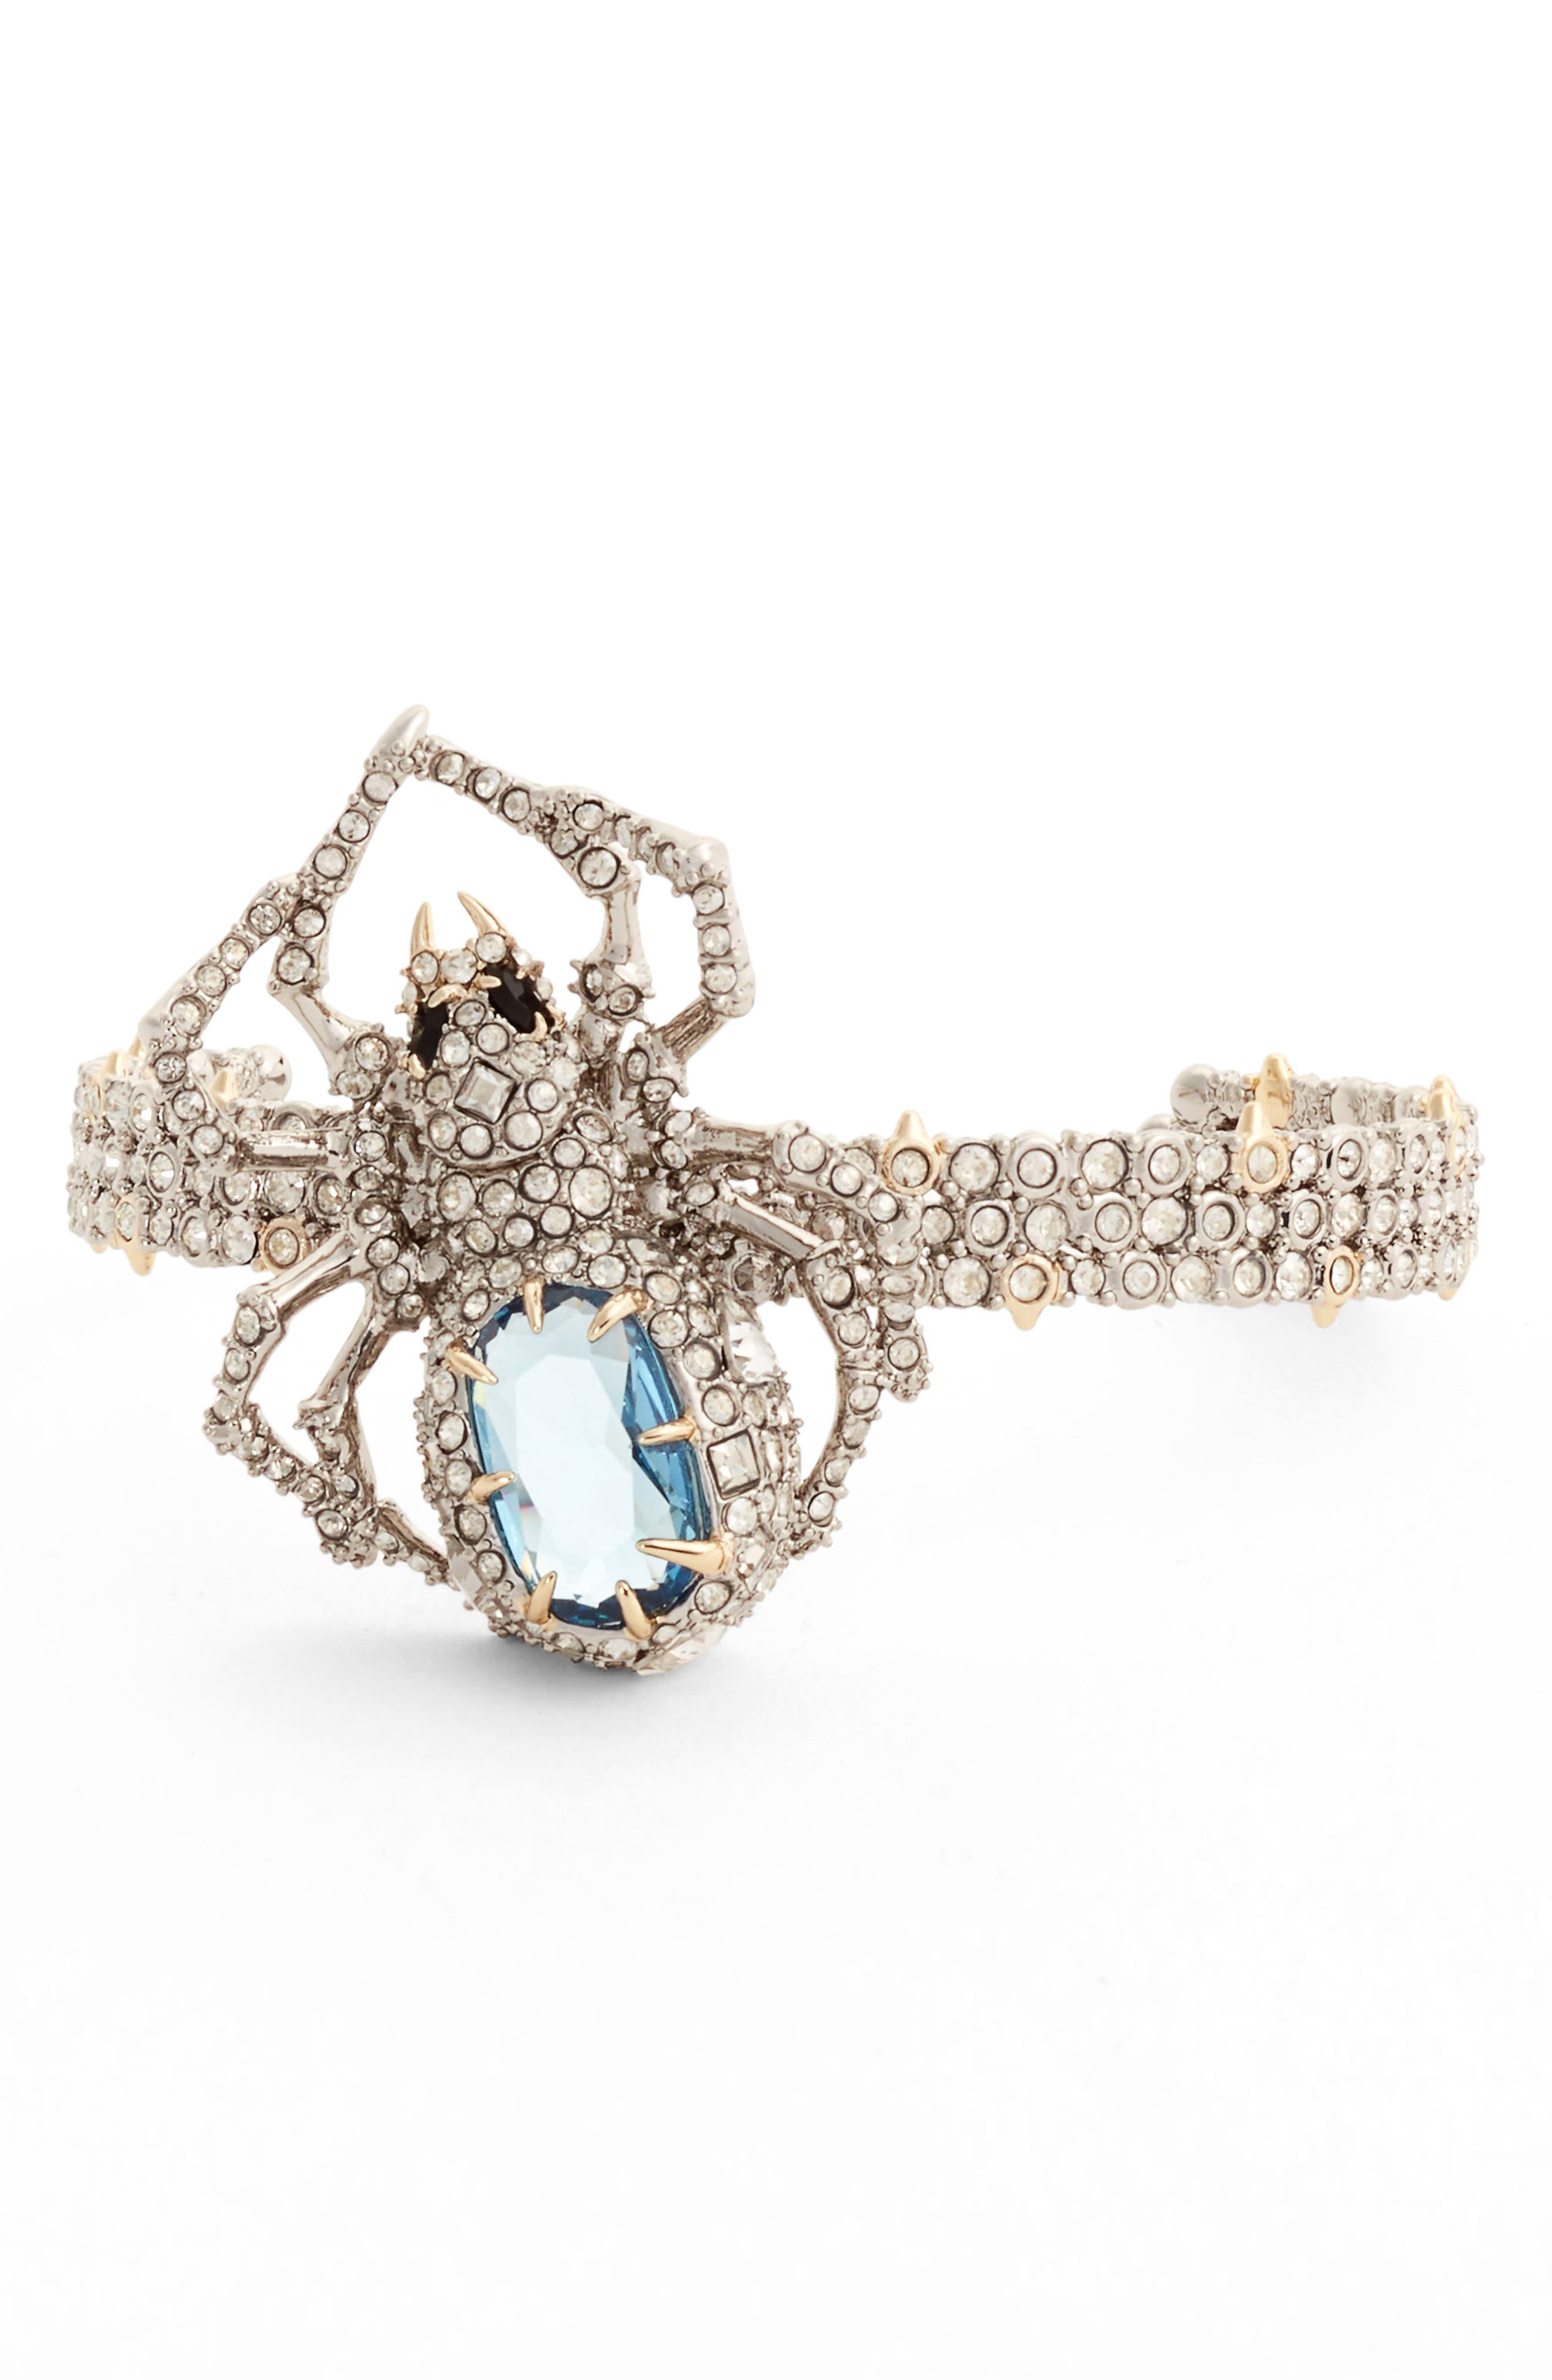 Alternate Image 1 Selected - Alexis Bittar Encrusted Spider Wrist Cuff